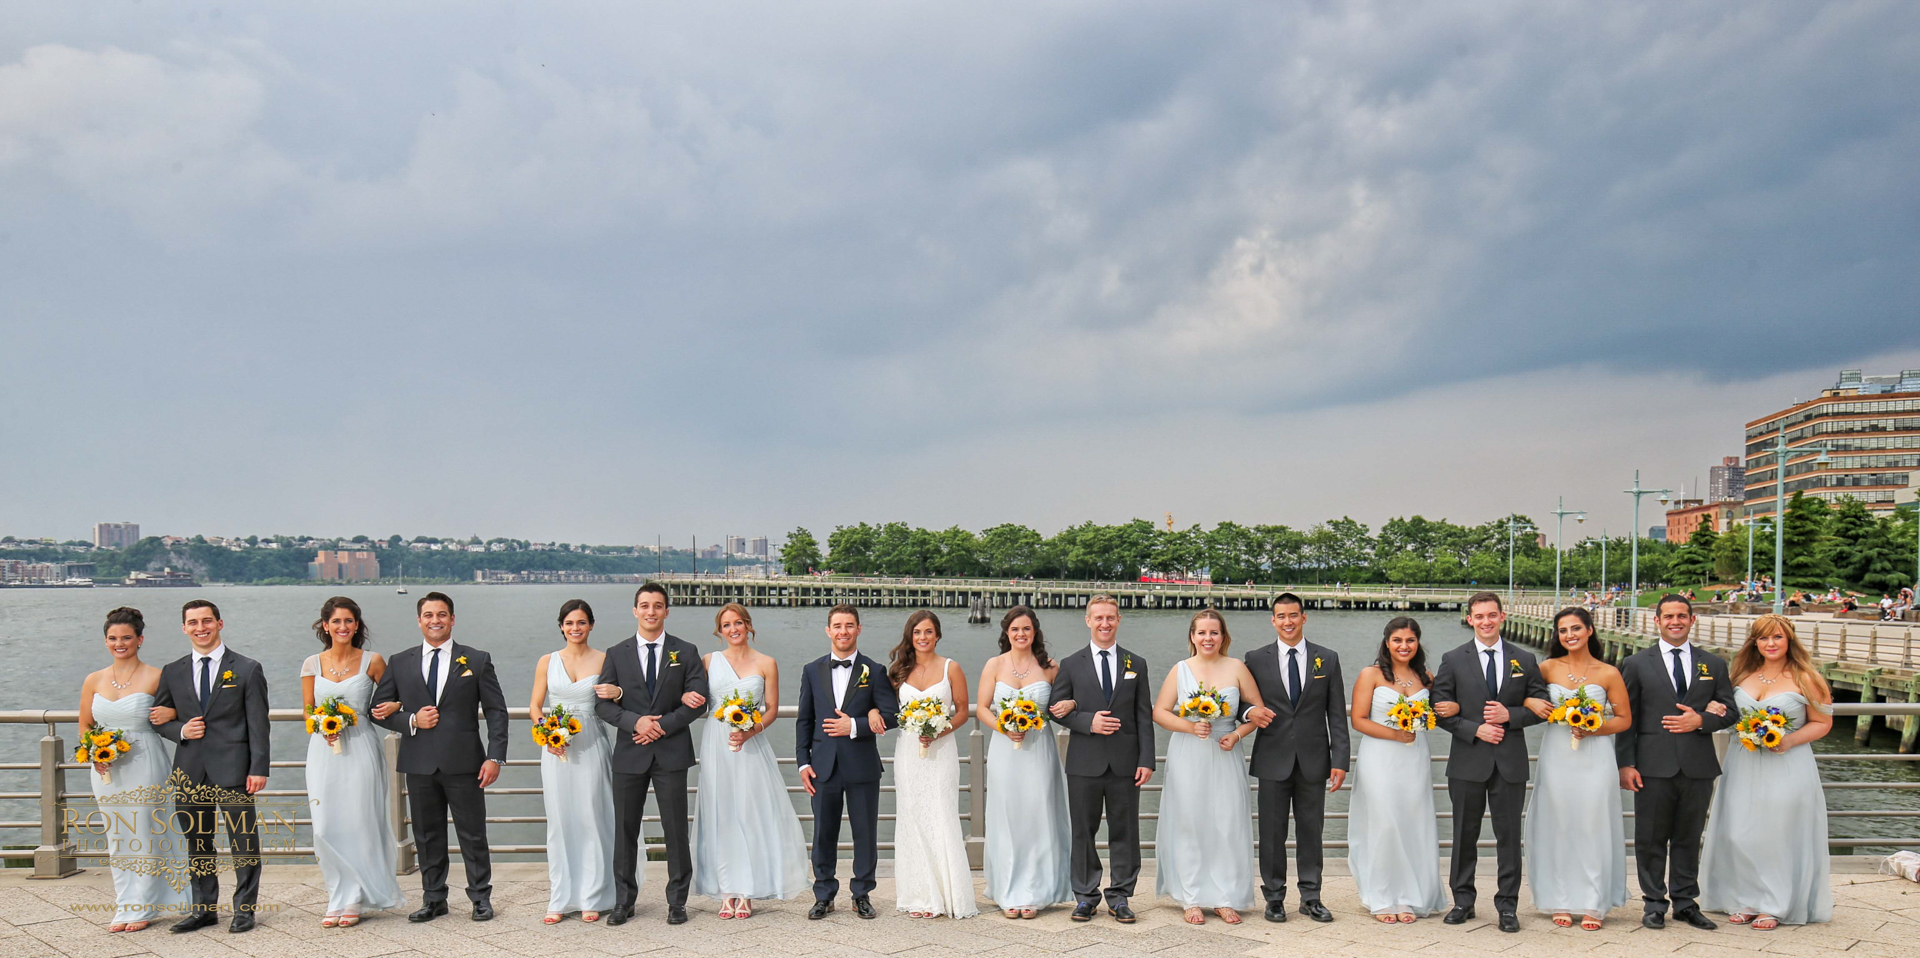 CURRENT AT CHELSEA PIERS WEDDING 026